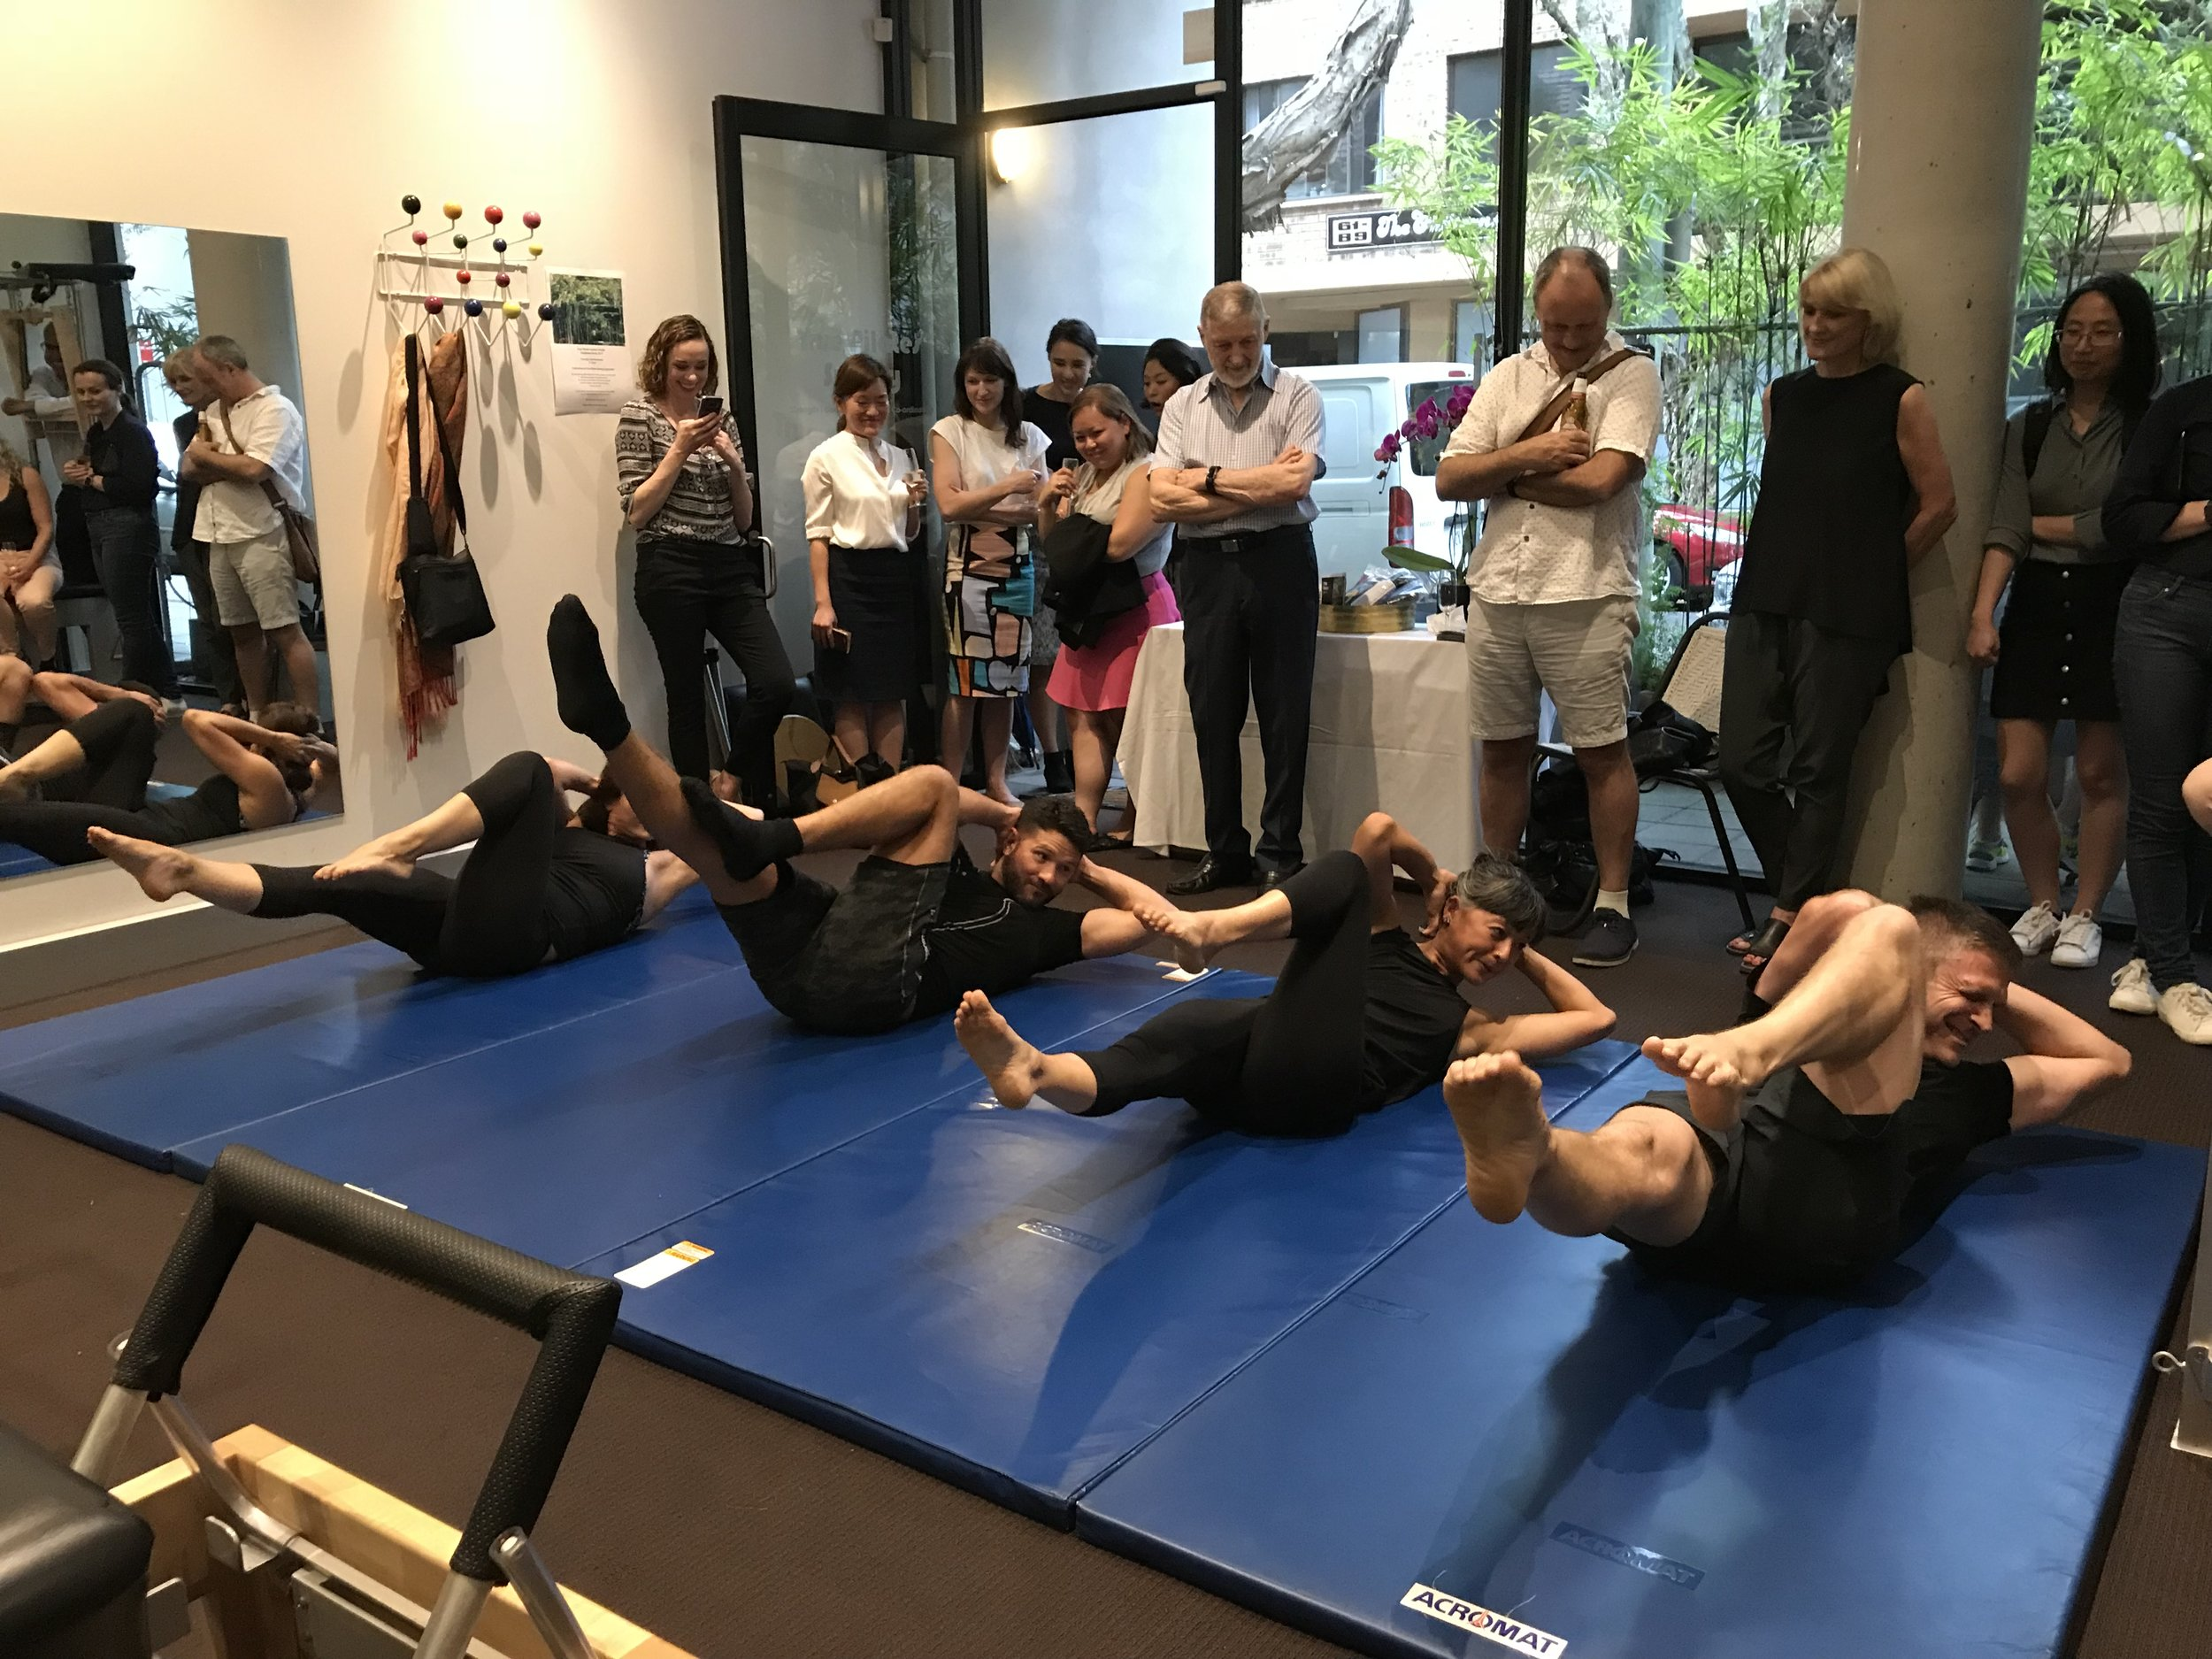 True Pilates Sydney Team demonstration